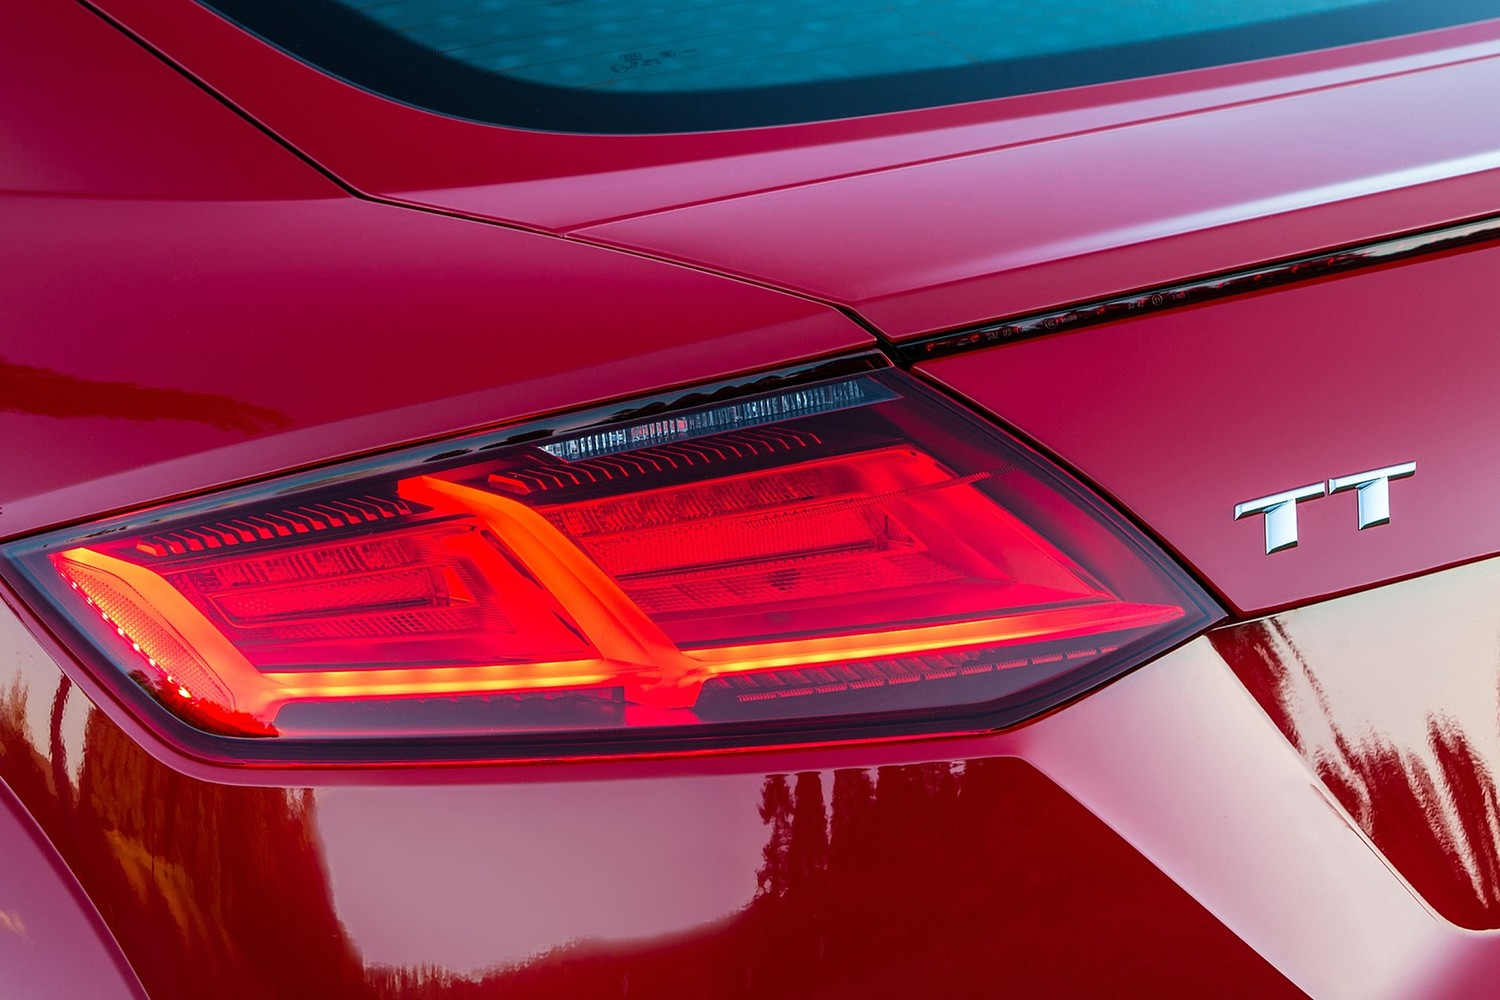 Audi TT 2.0T quattro Coupe Rear Badge (2017 model year shown)